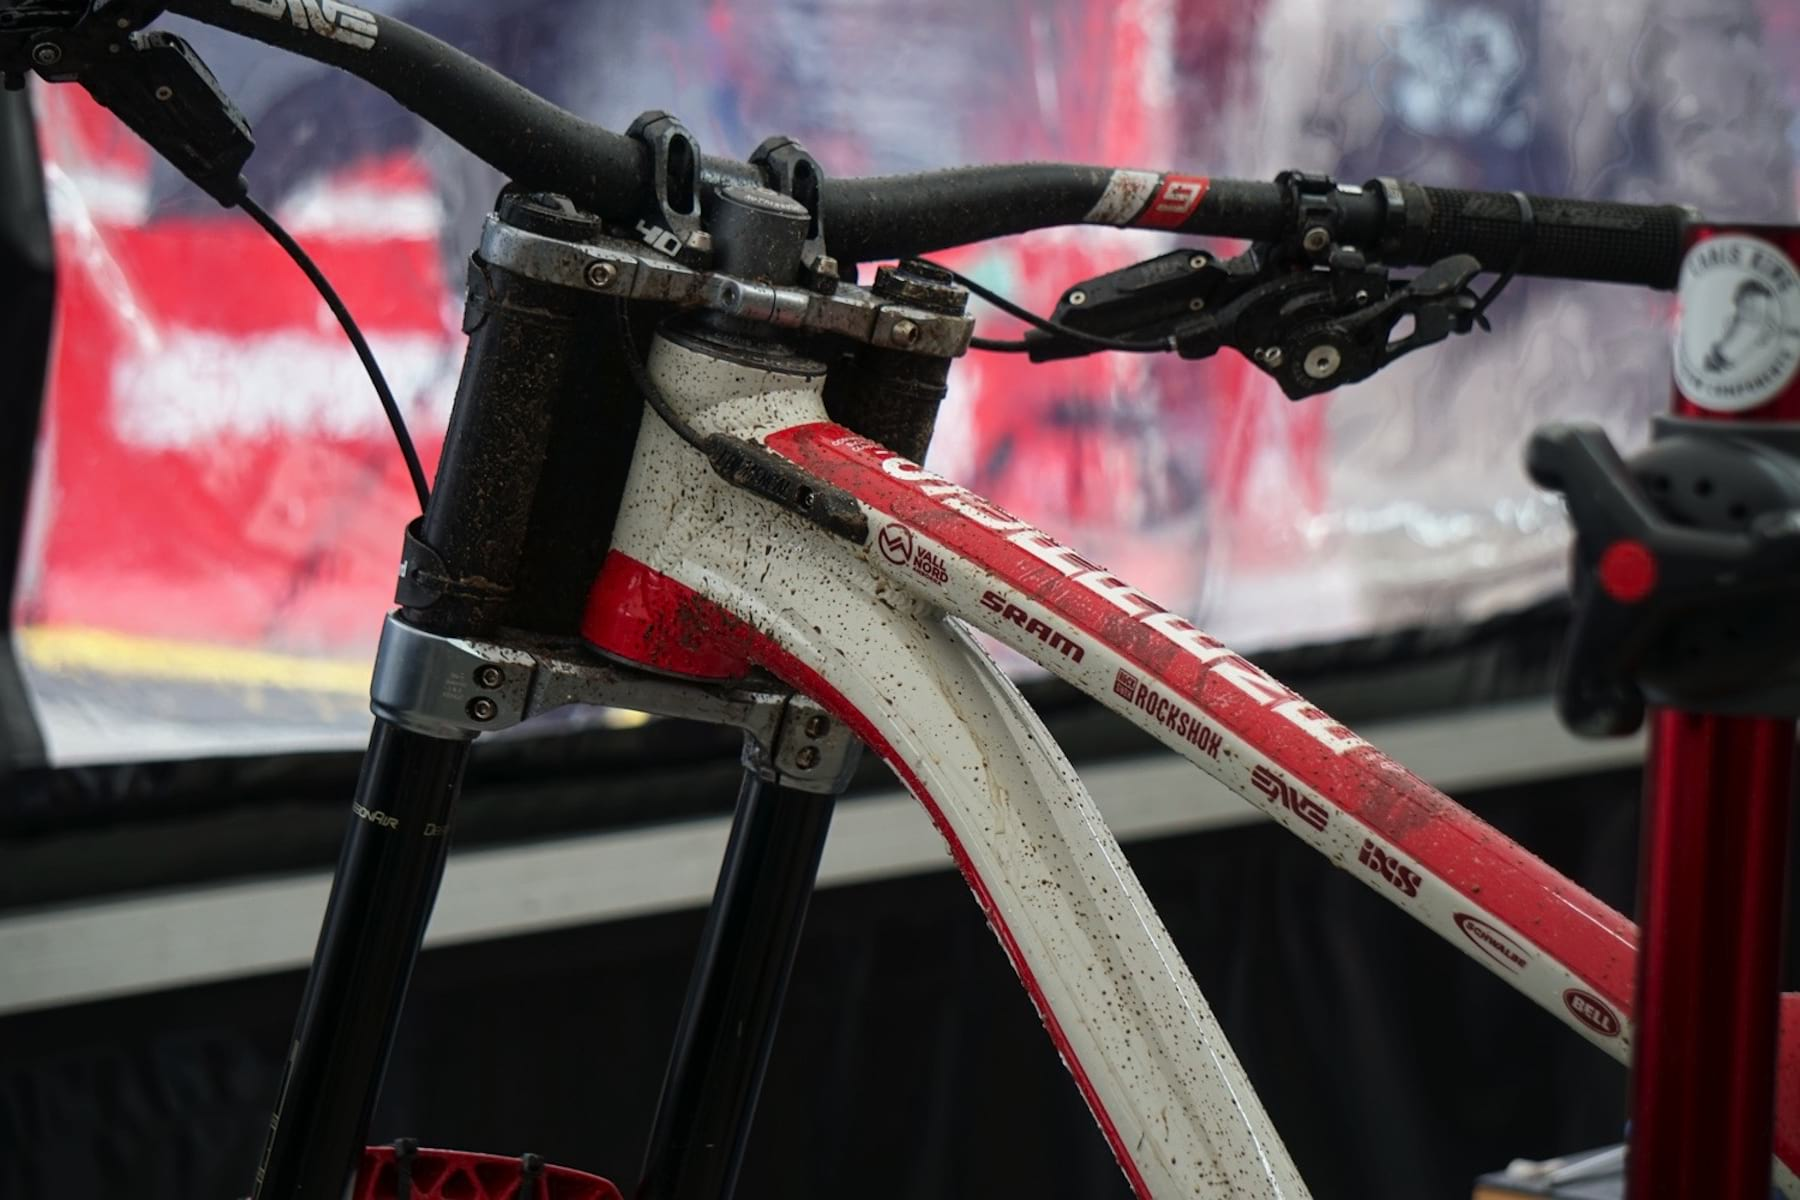 fad4e23f799 Spotted At Fort William: The New Commencal Supreme DH bike